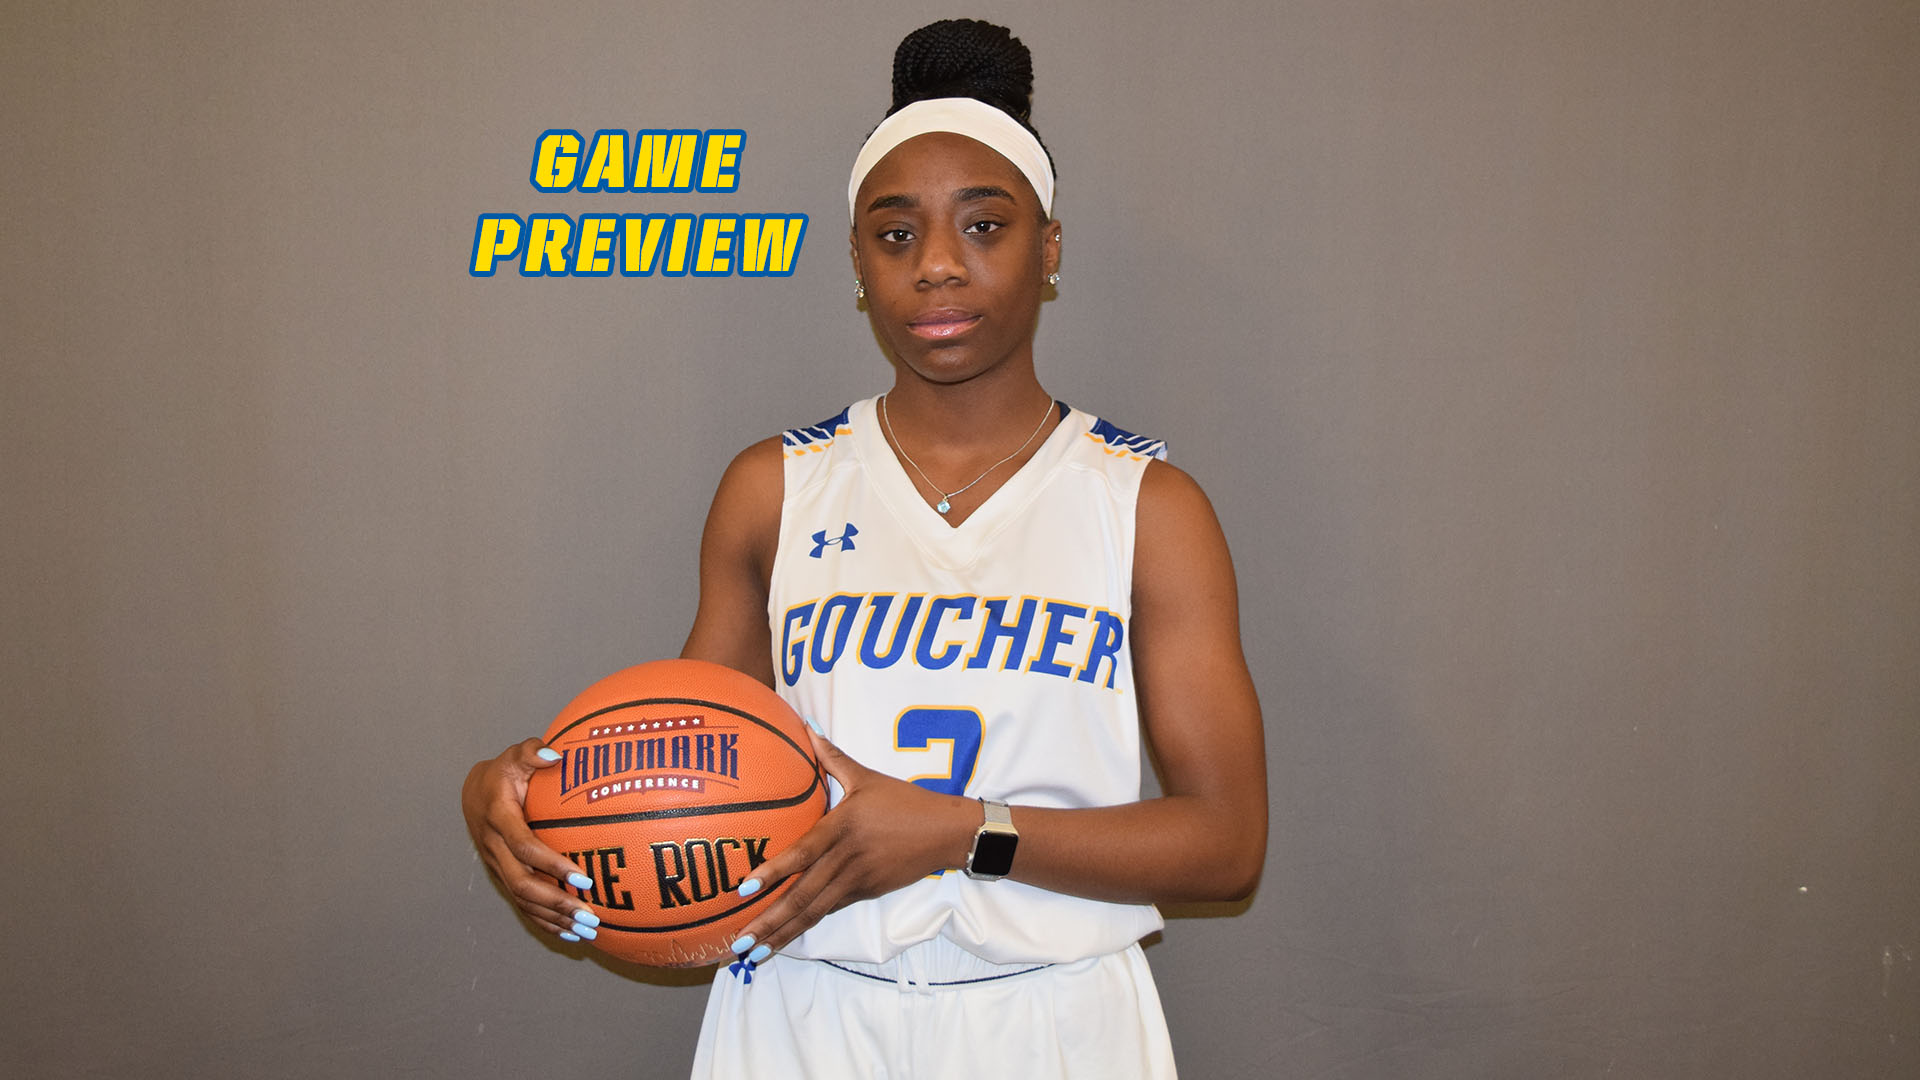 Goucher Women's Basketball Ready For Some Home Cookin' Against Drew In 2020 Home Debut